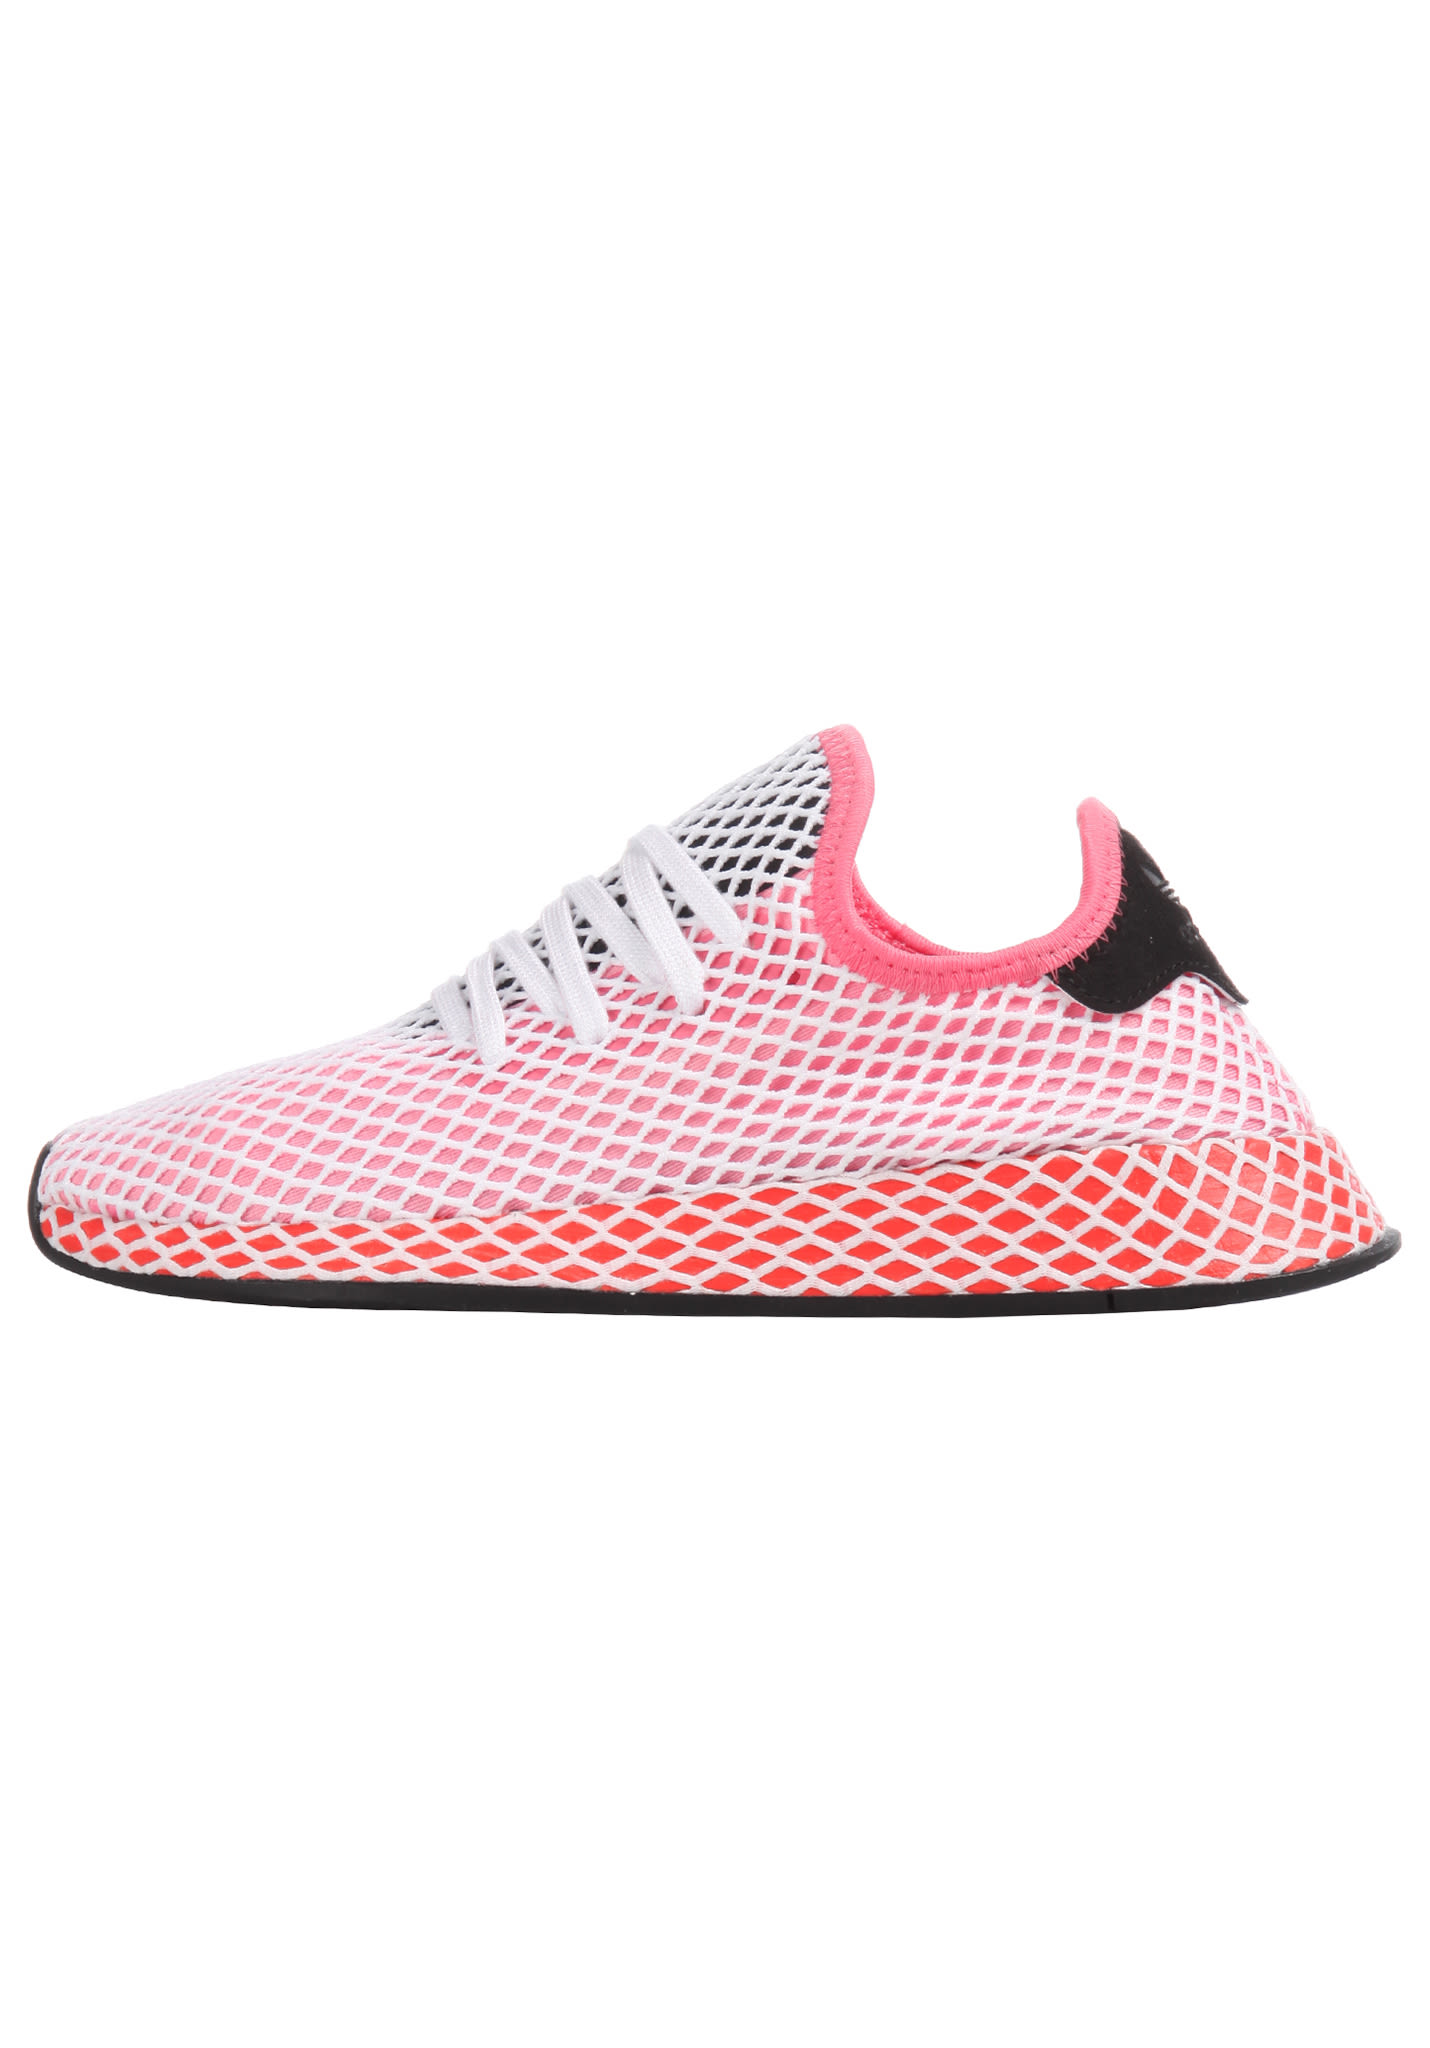 buy cheap 3bf2a 5bfde ADIDAS ORIGINALS Deerupt Runner - Sneakers for Women - Pink